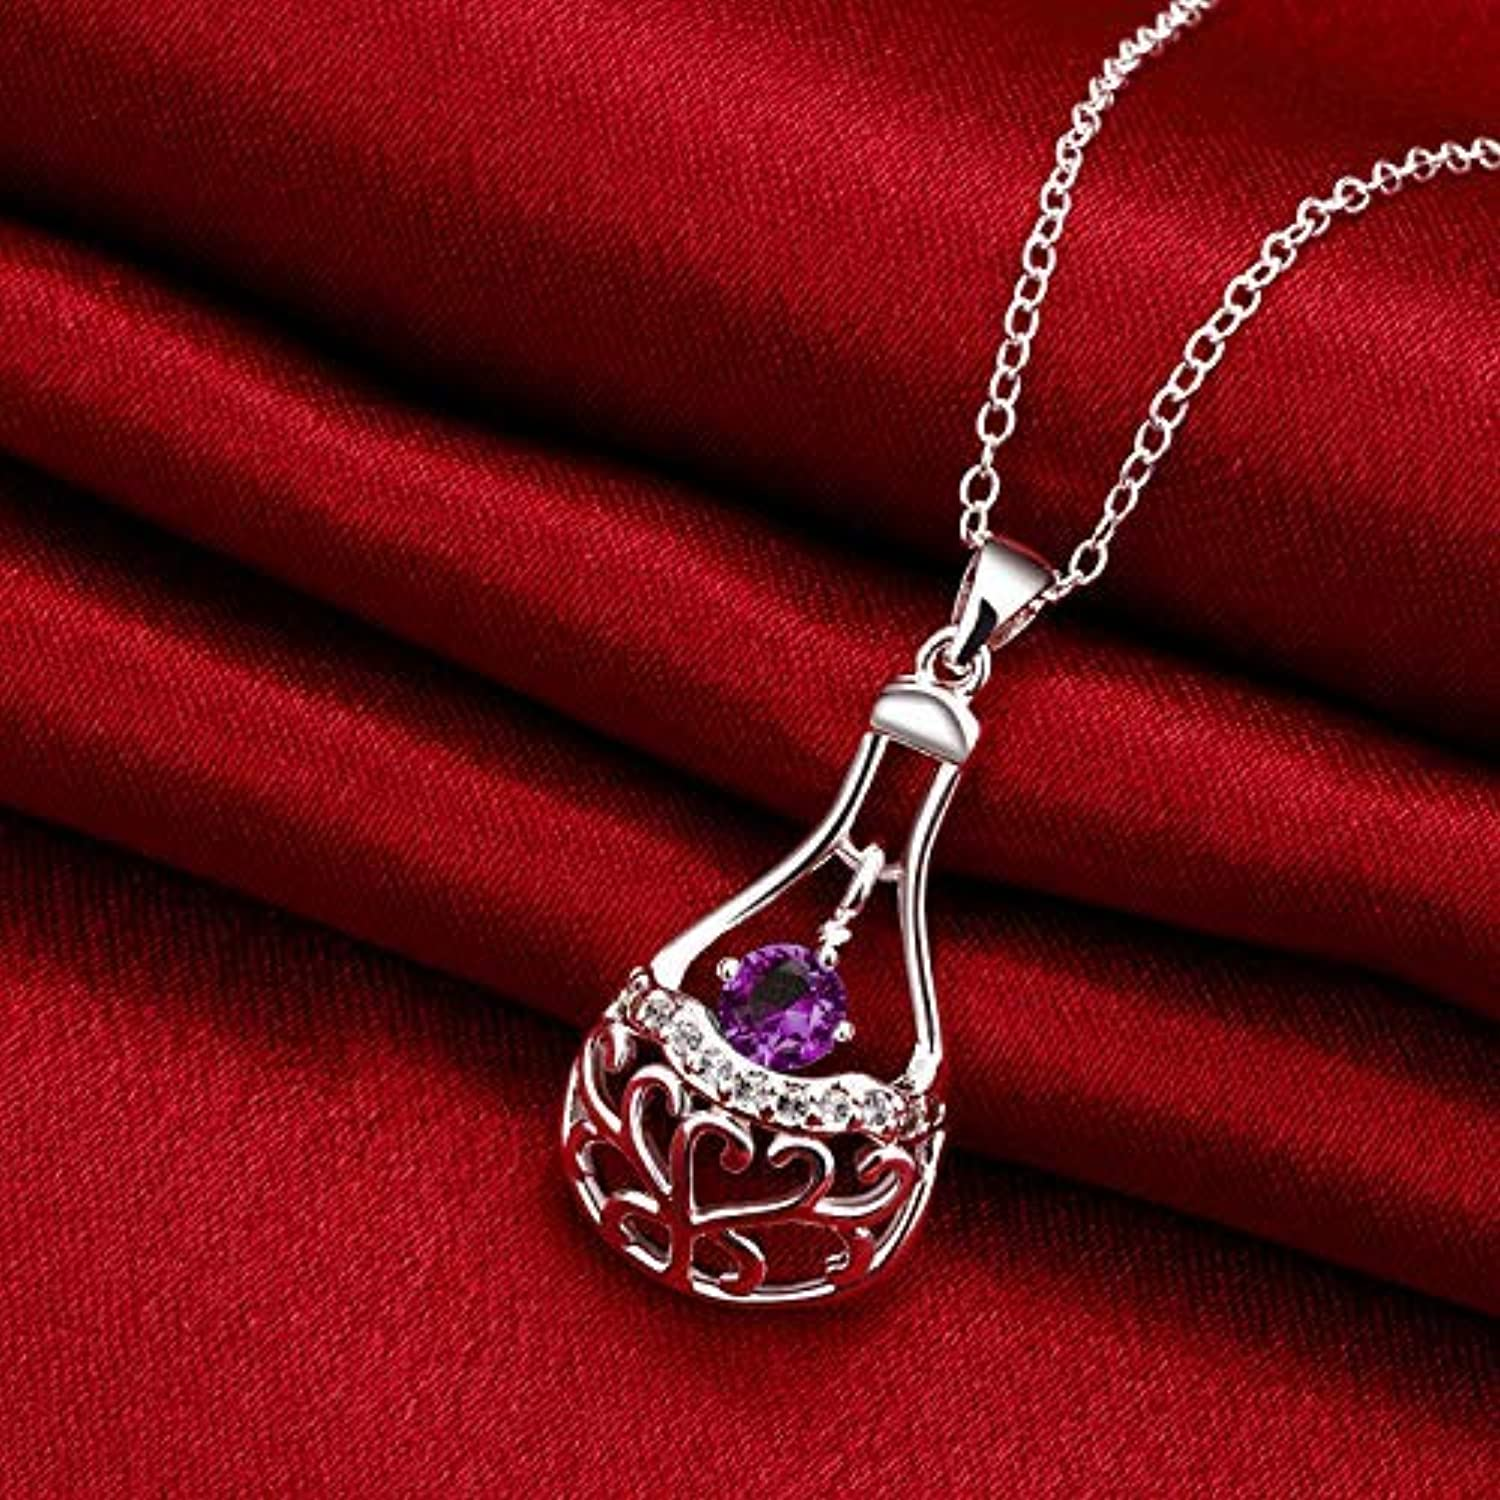 Rhinestone Necklace Home Exquisite Ladies Necklace Fashion Cutout 925 Zircon Jewelry (color   Purple) by Enking